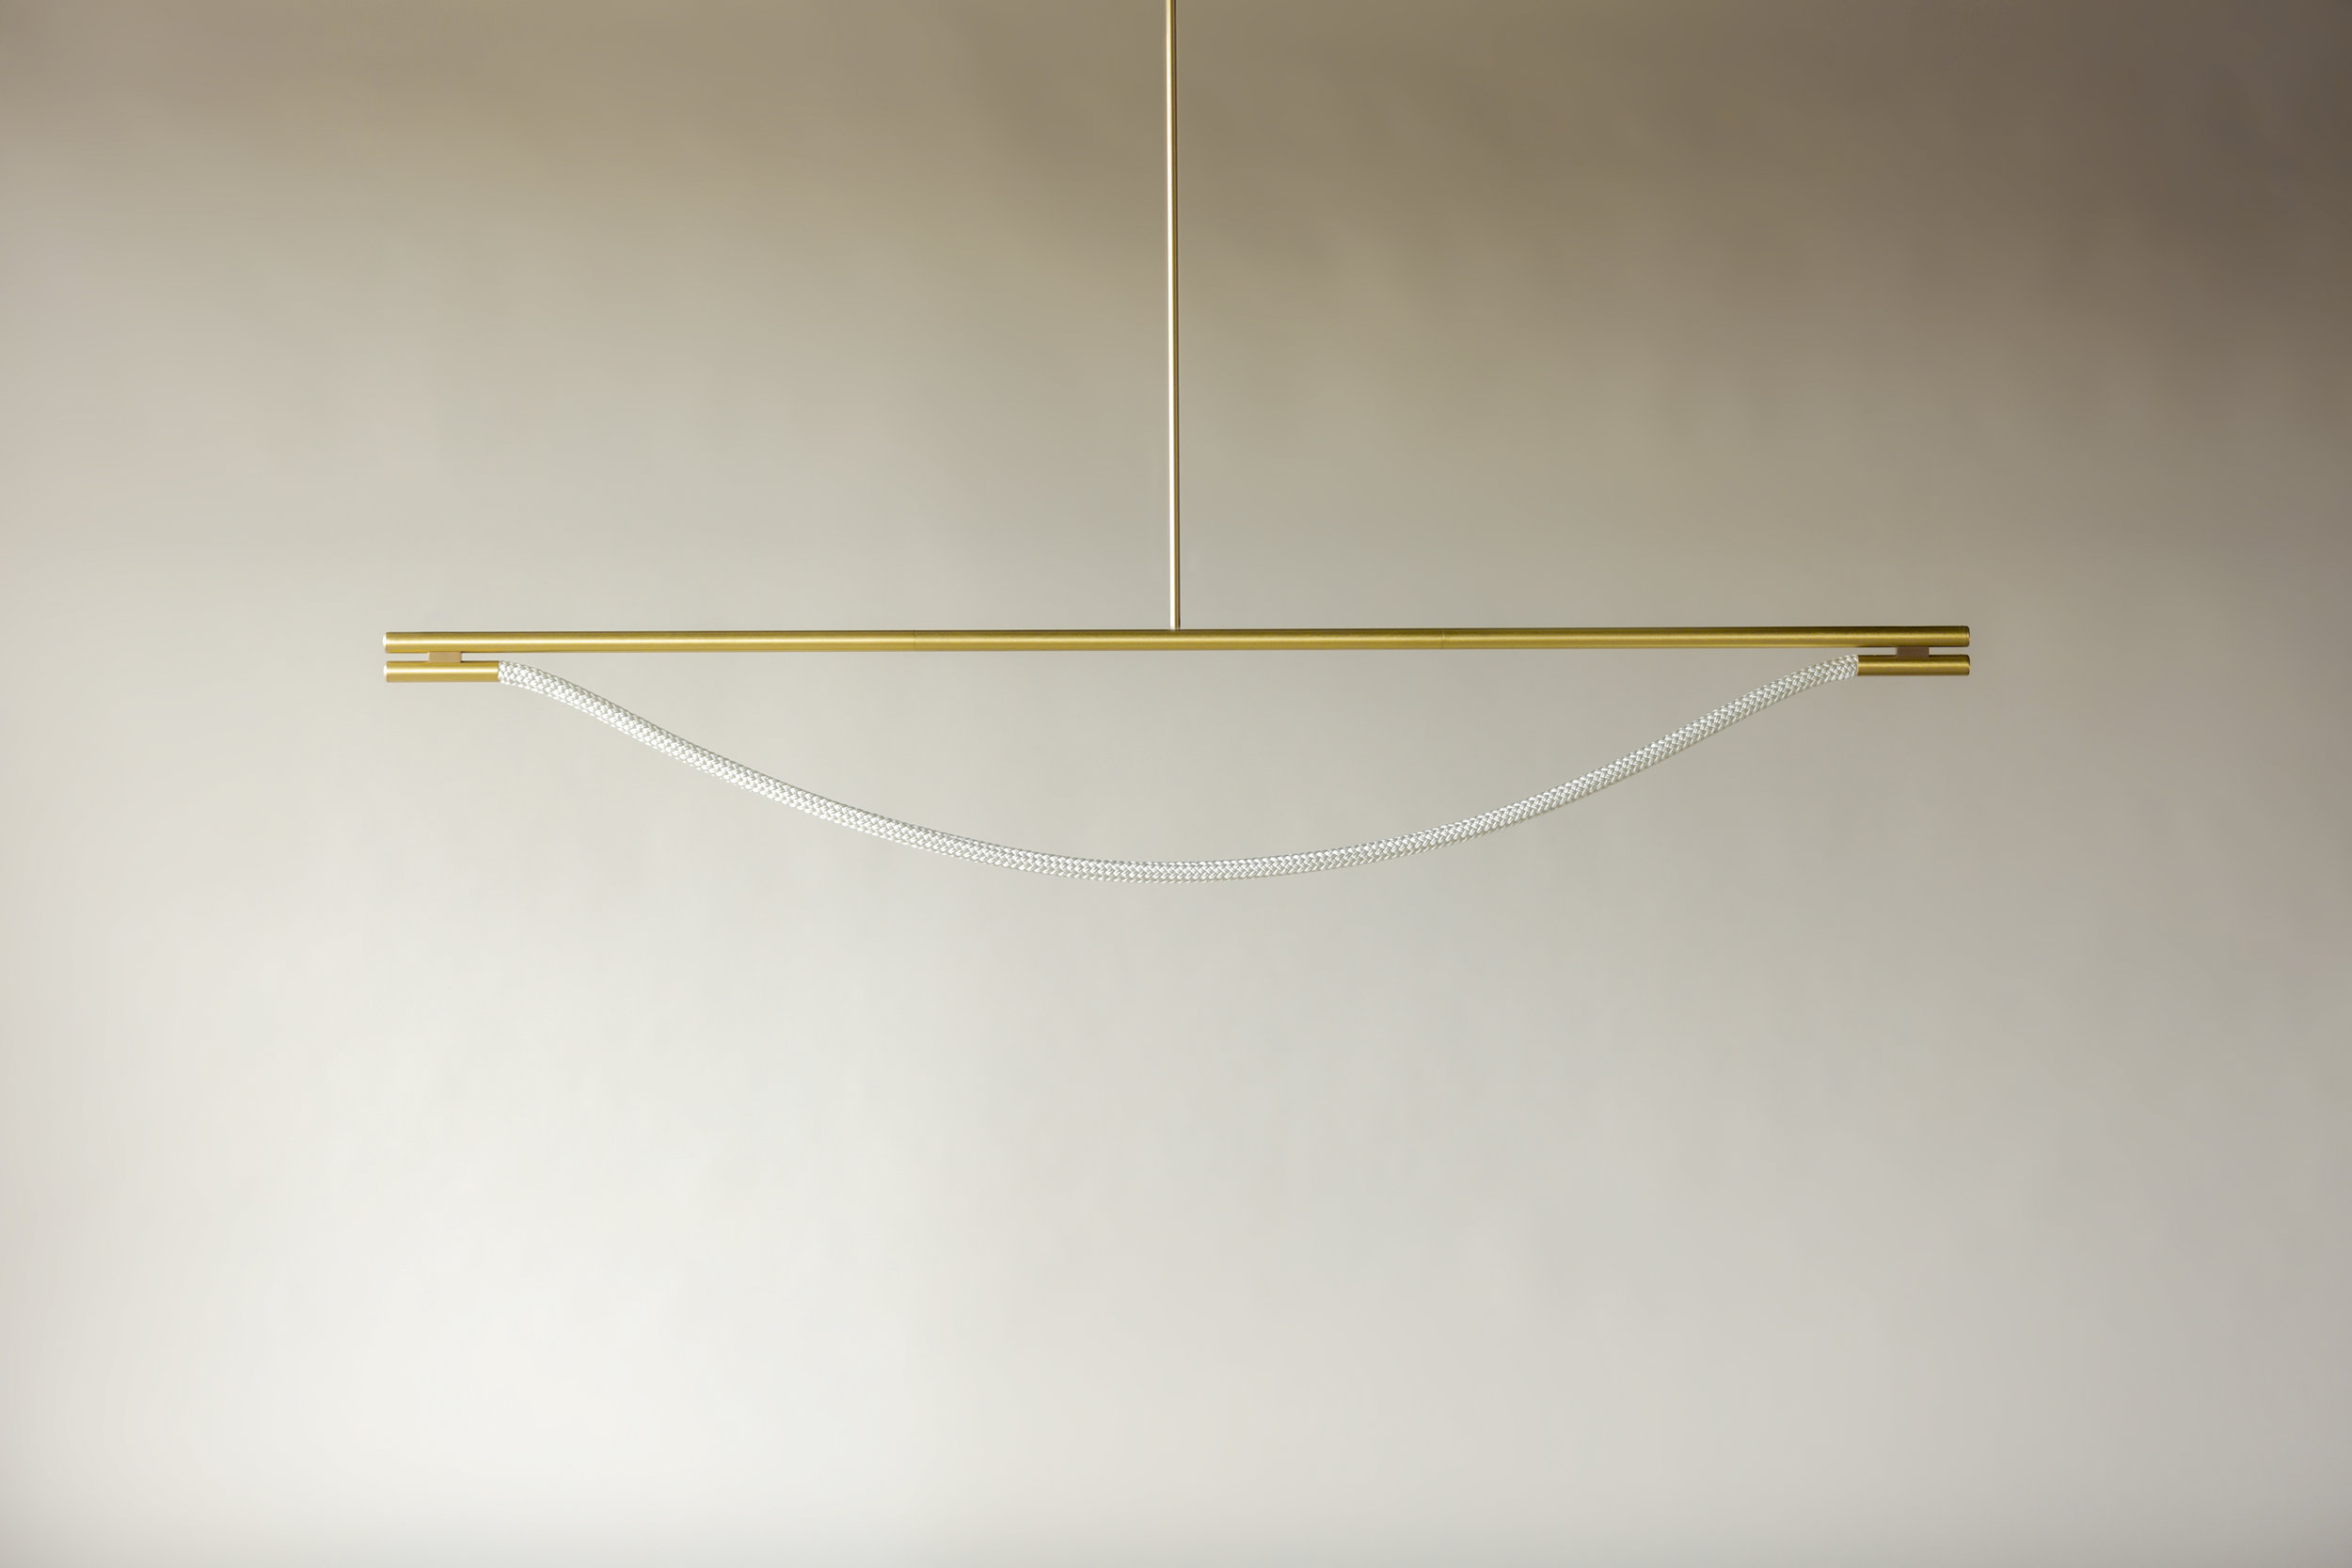 6' Artemis Suspension I - Rod  (pictured in Satin Brass / turned off)